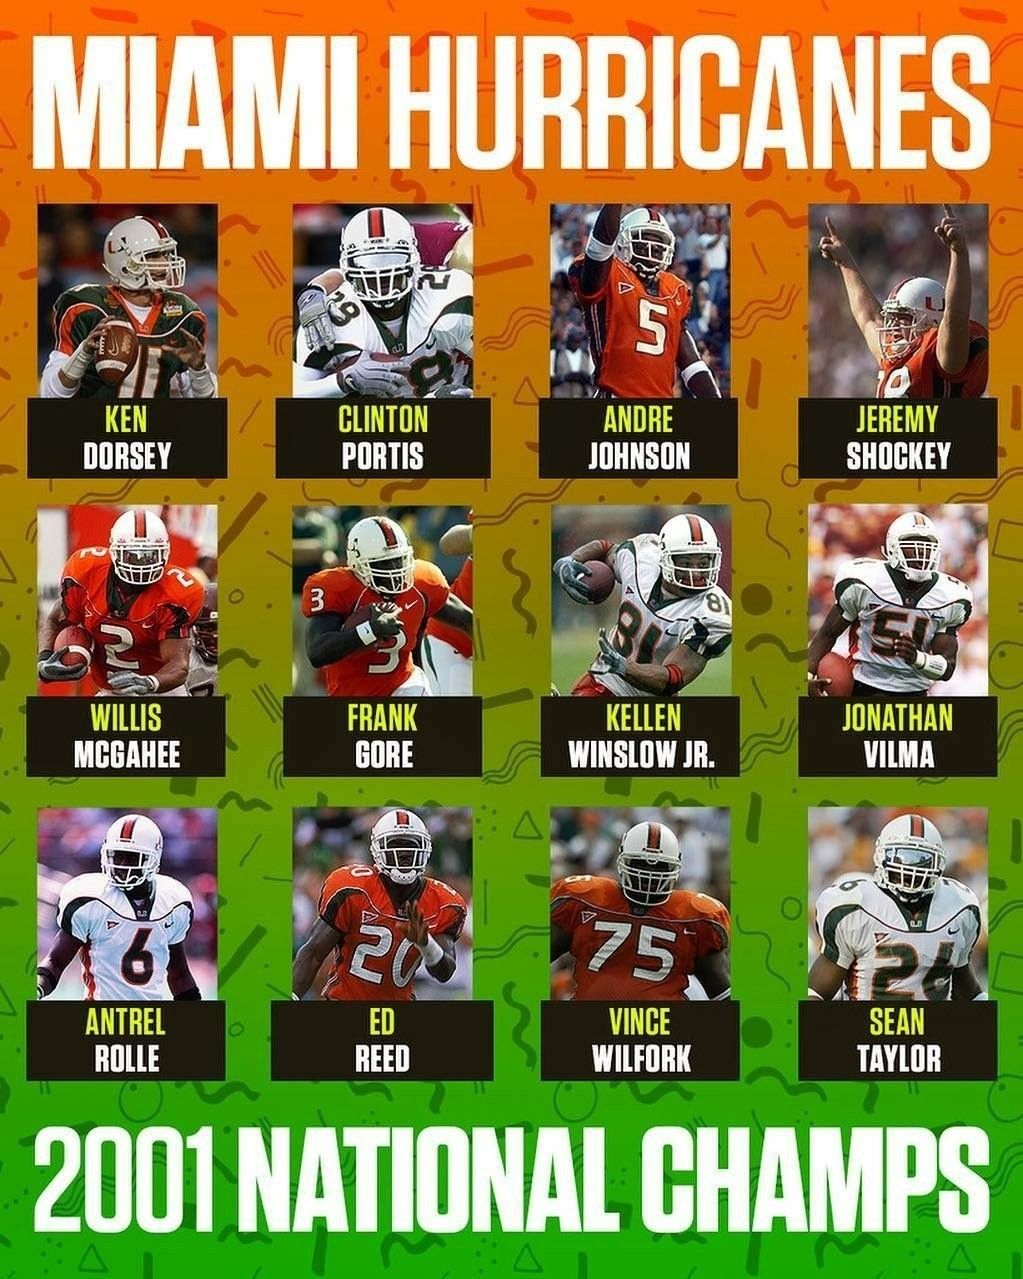 Pin By Saeed Ceasar On The U In 2020 Miami Hurricanes Football Miami Football Hurricanes Football